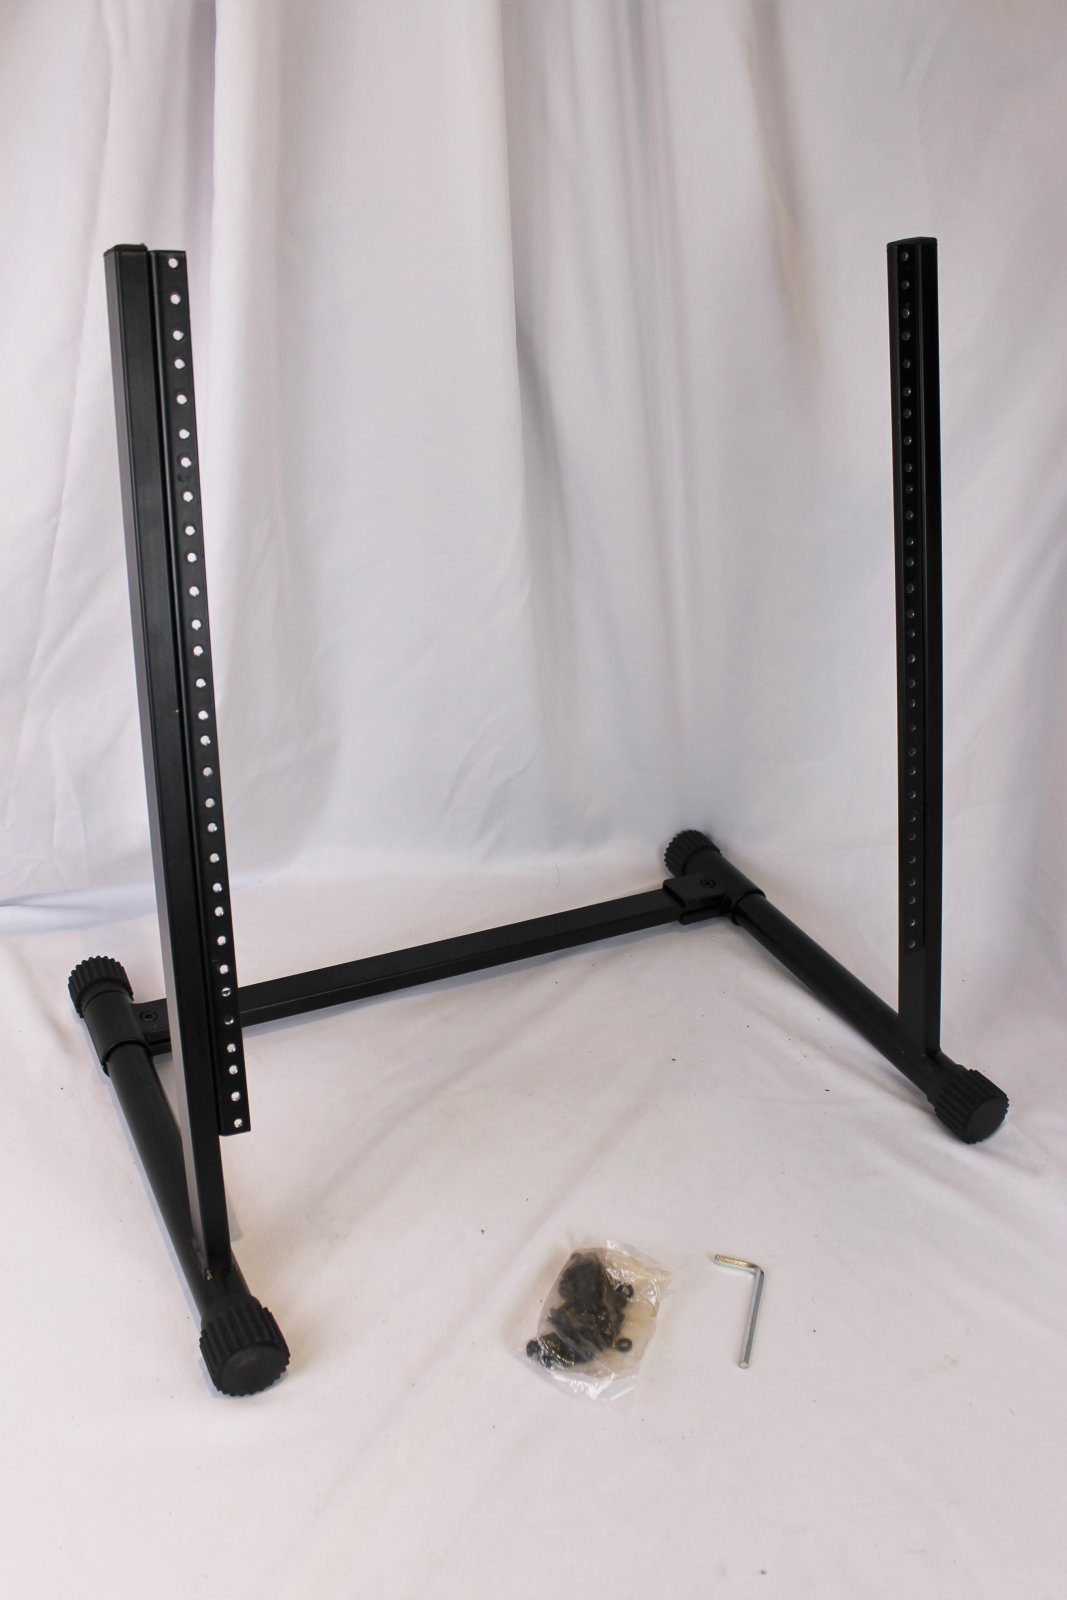 Black Rack Stand for Amplifiers and Audio Equipment